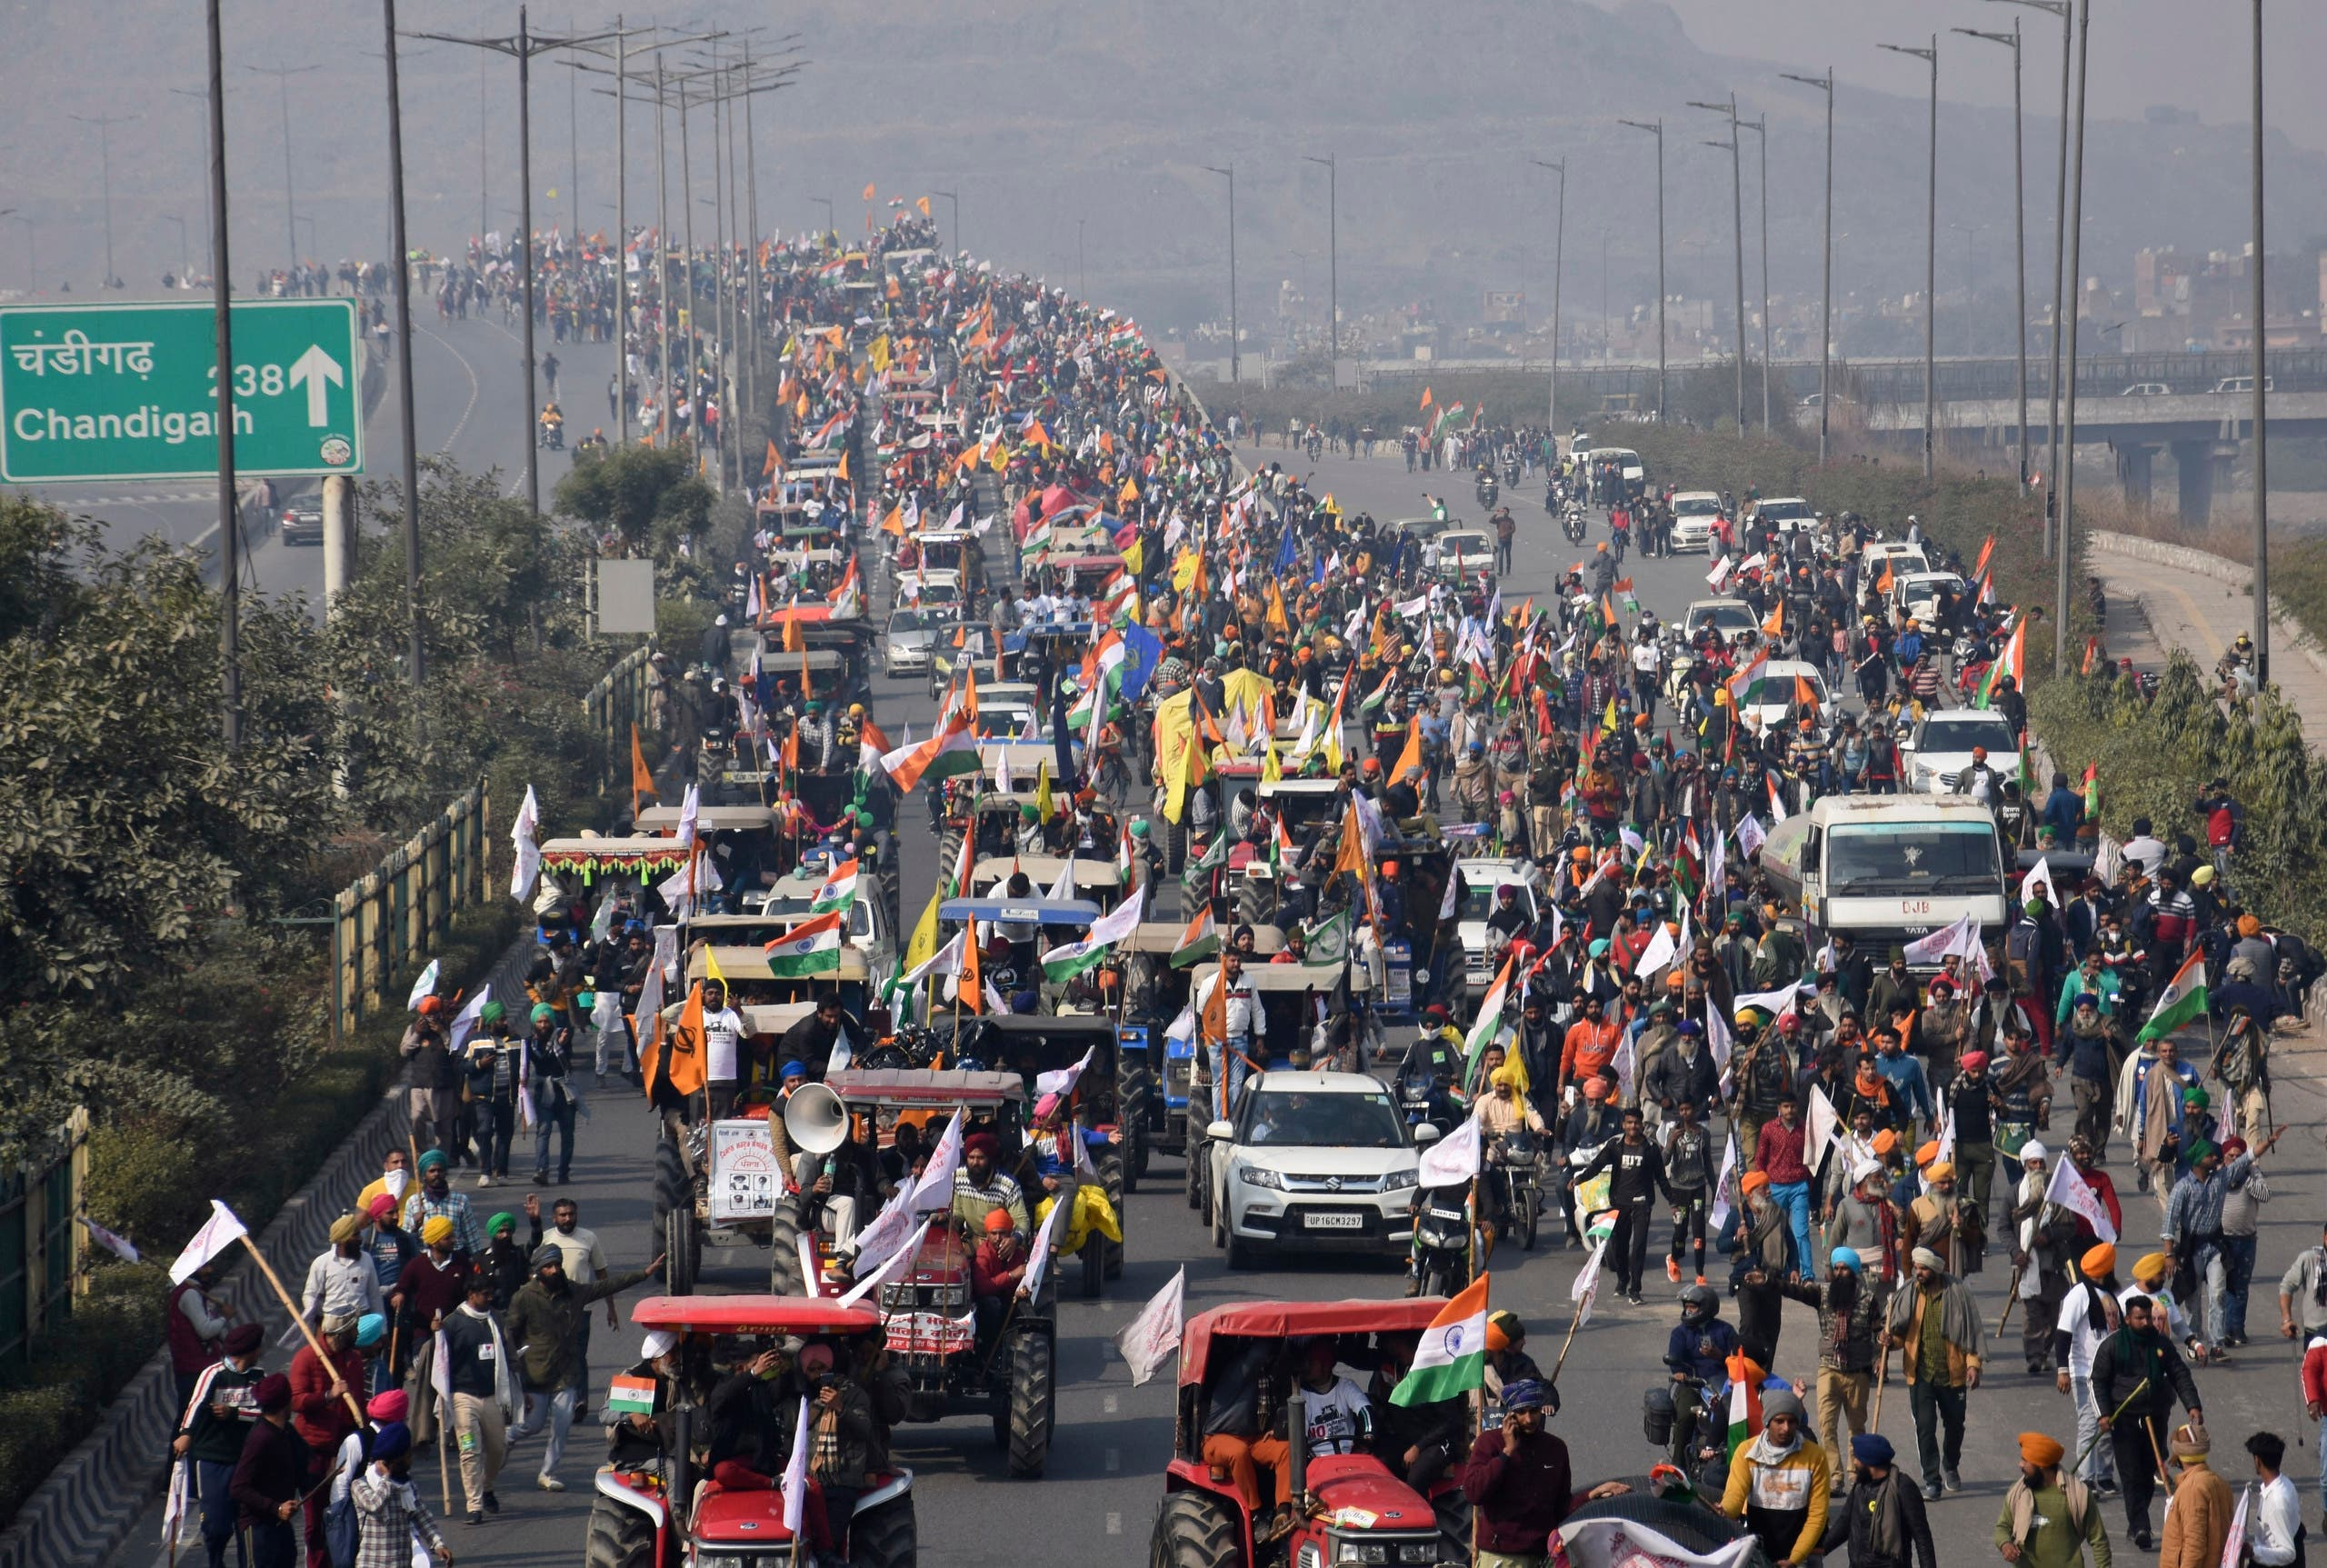 Farmers participate in a protest march towards the capital during India's Republic Day celebrations in New Delhi, India, Tuesday, Jan. 26, 2021. (AP)